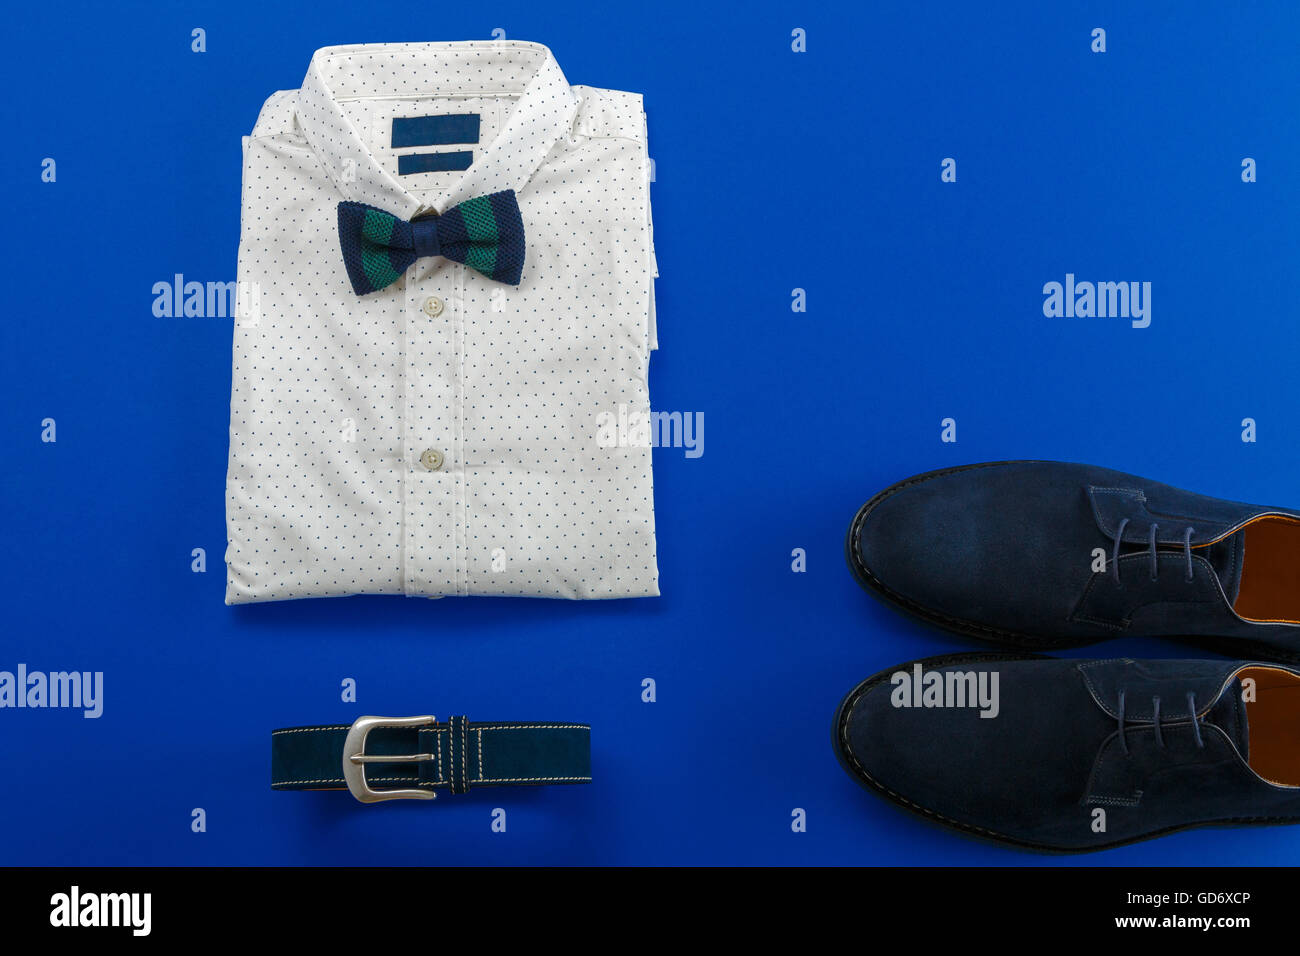 Mens wedding accessory. Mens outfits, white polka-dot shirt with with bow tie, blue belt and shoes on brown background - Stock Image